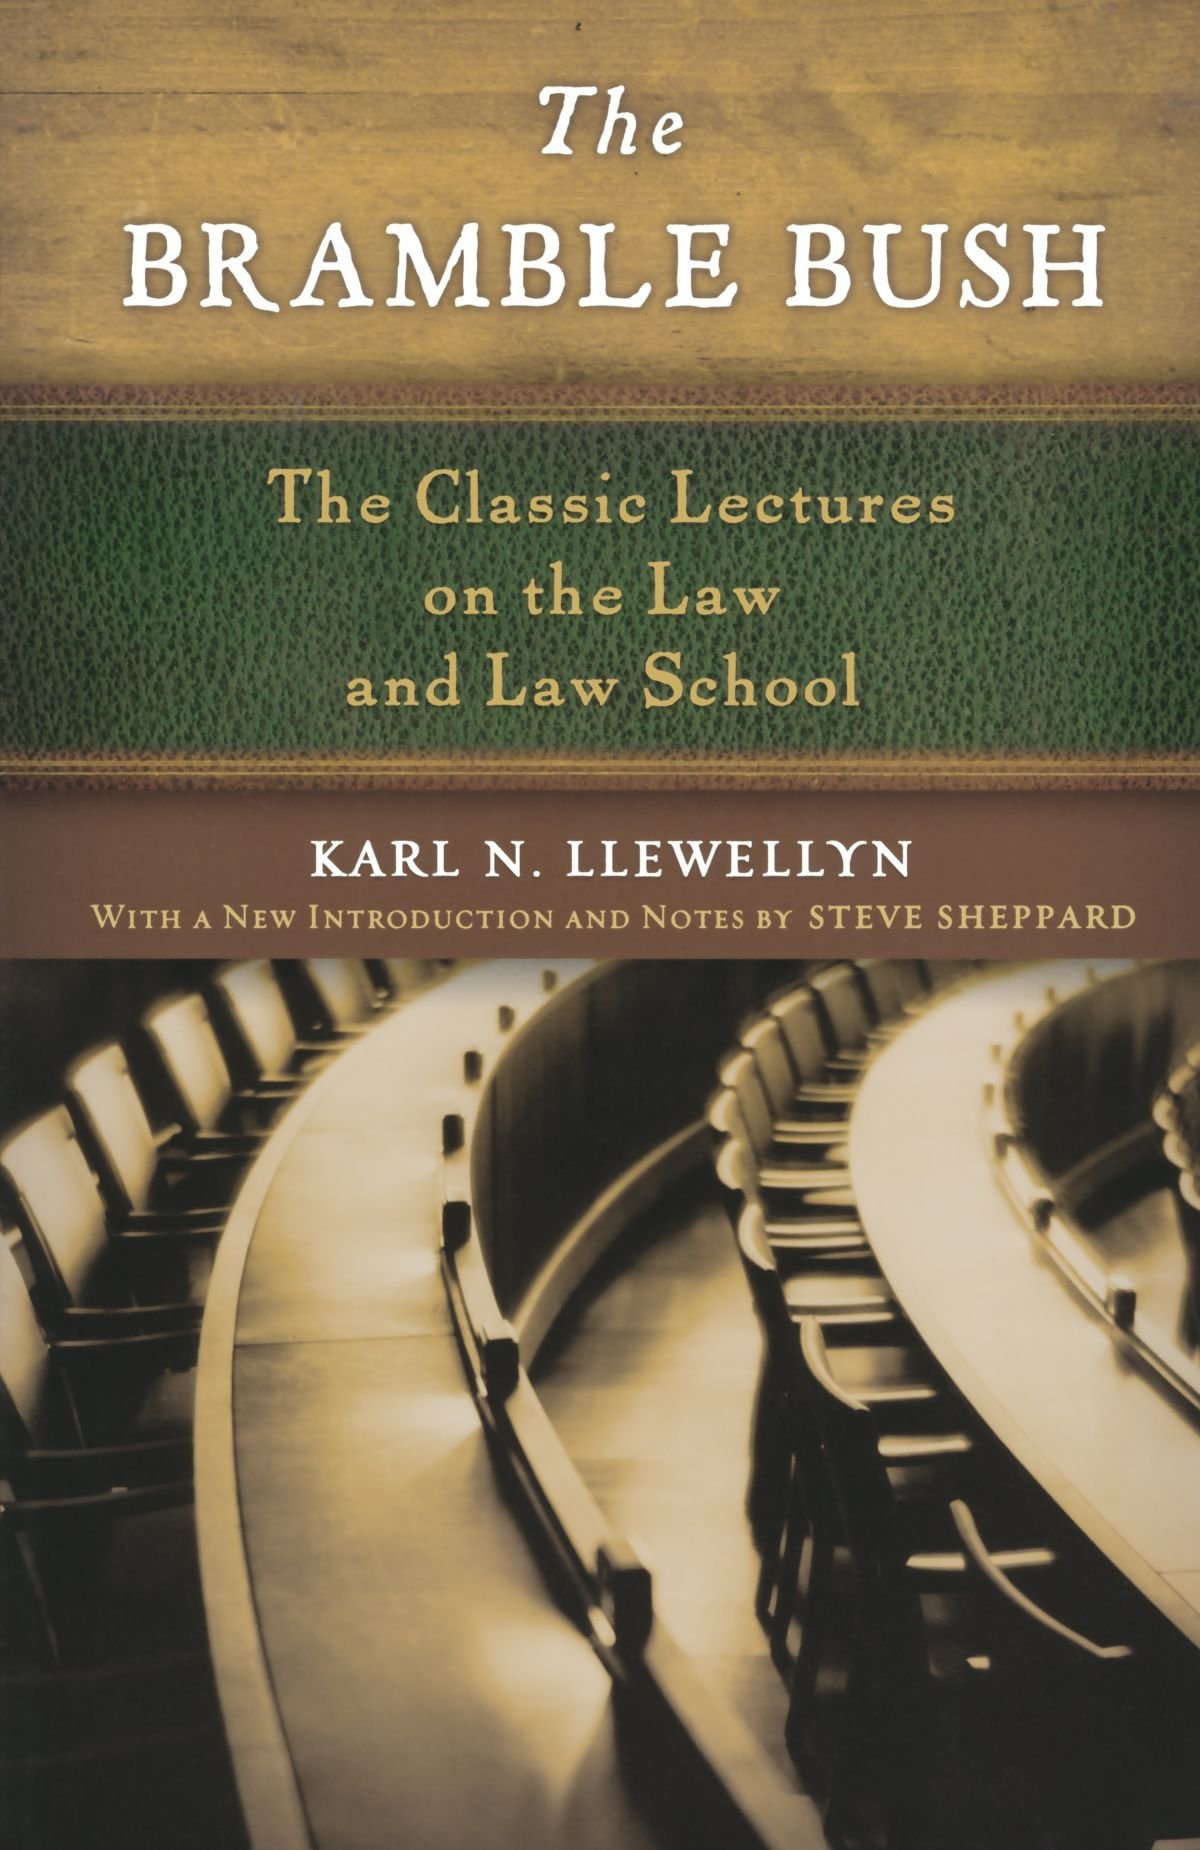 The Bramble Bush: The Classic Lectures on the Law and Law School by Oxford University Press